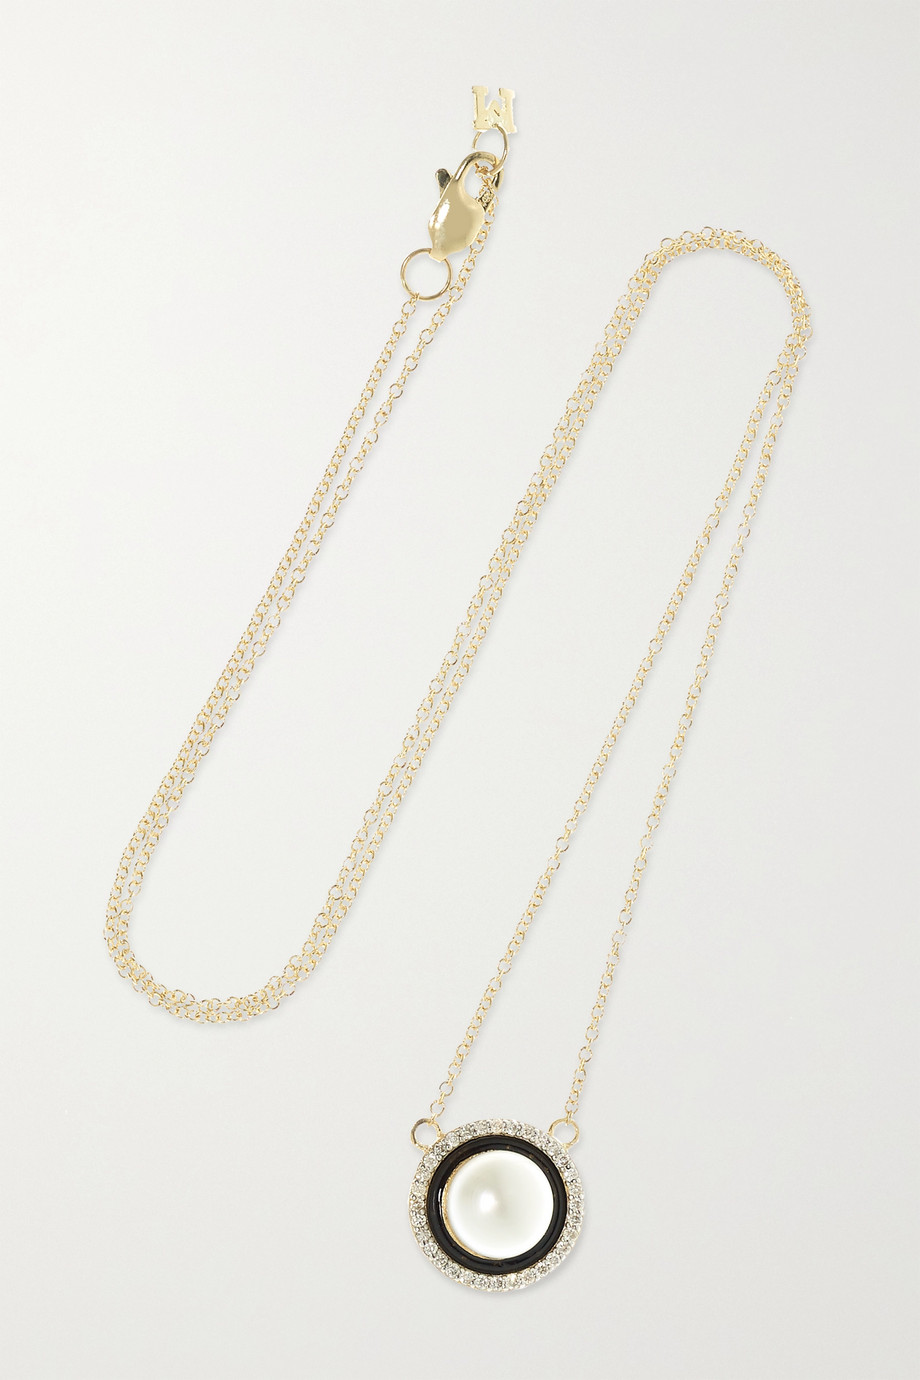 Mateo 14-karat gold, pearl, diamond and enamel necklace